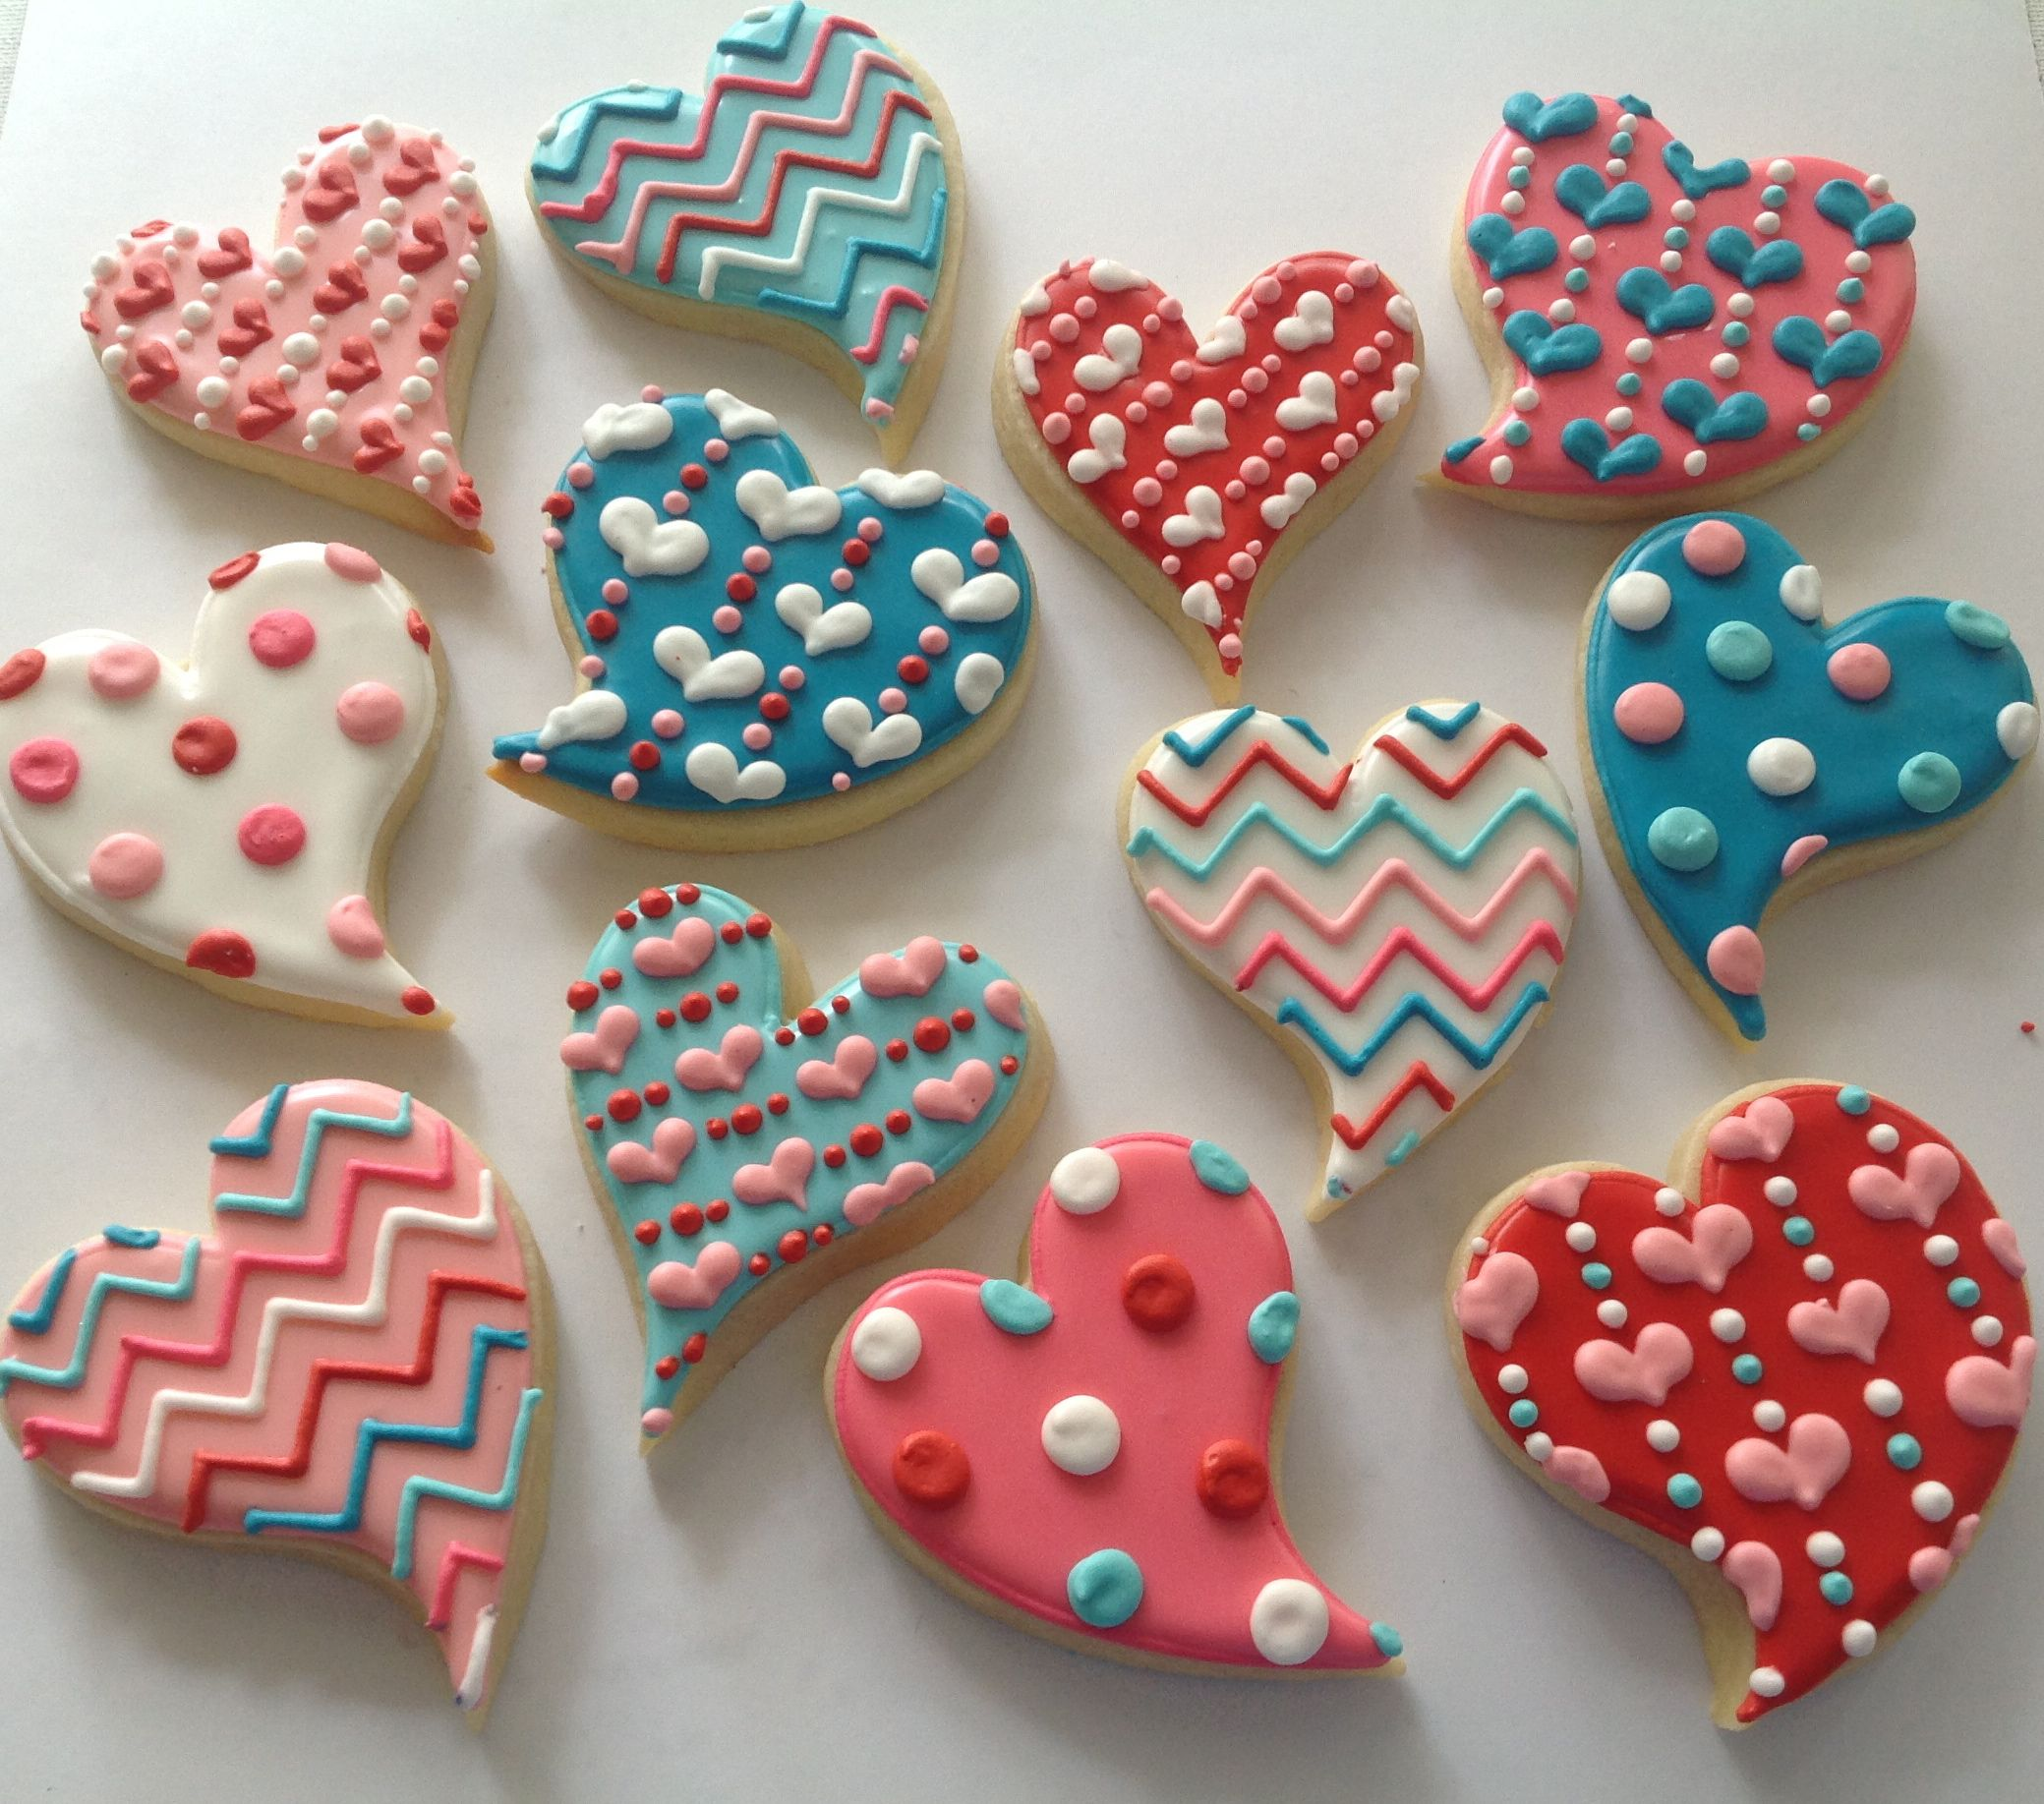 Como Decorar Galletas De Corazon Valentine Heart Set Cookies Pinterest Galleta Galletas